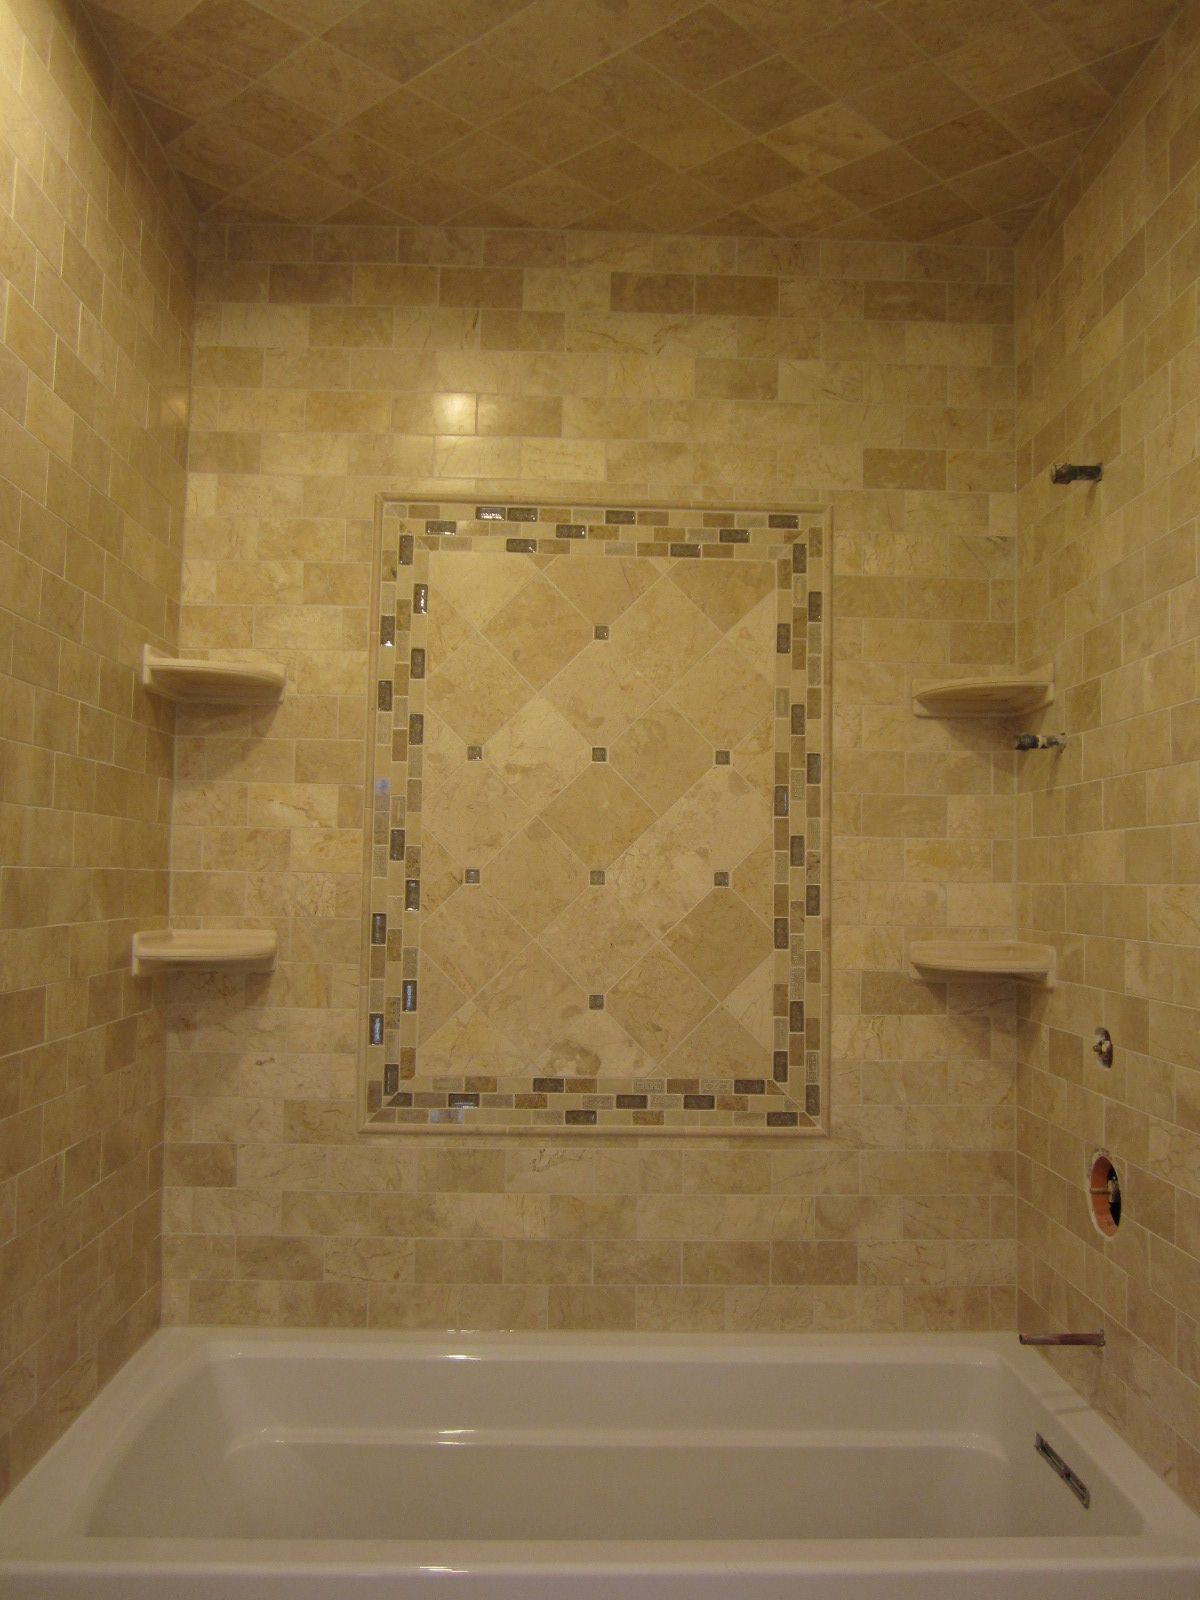 Travertine Subway Tiles And 6X6 With Sonoma Tile Accent, Pencil